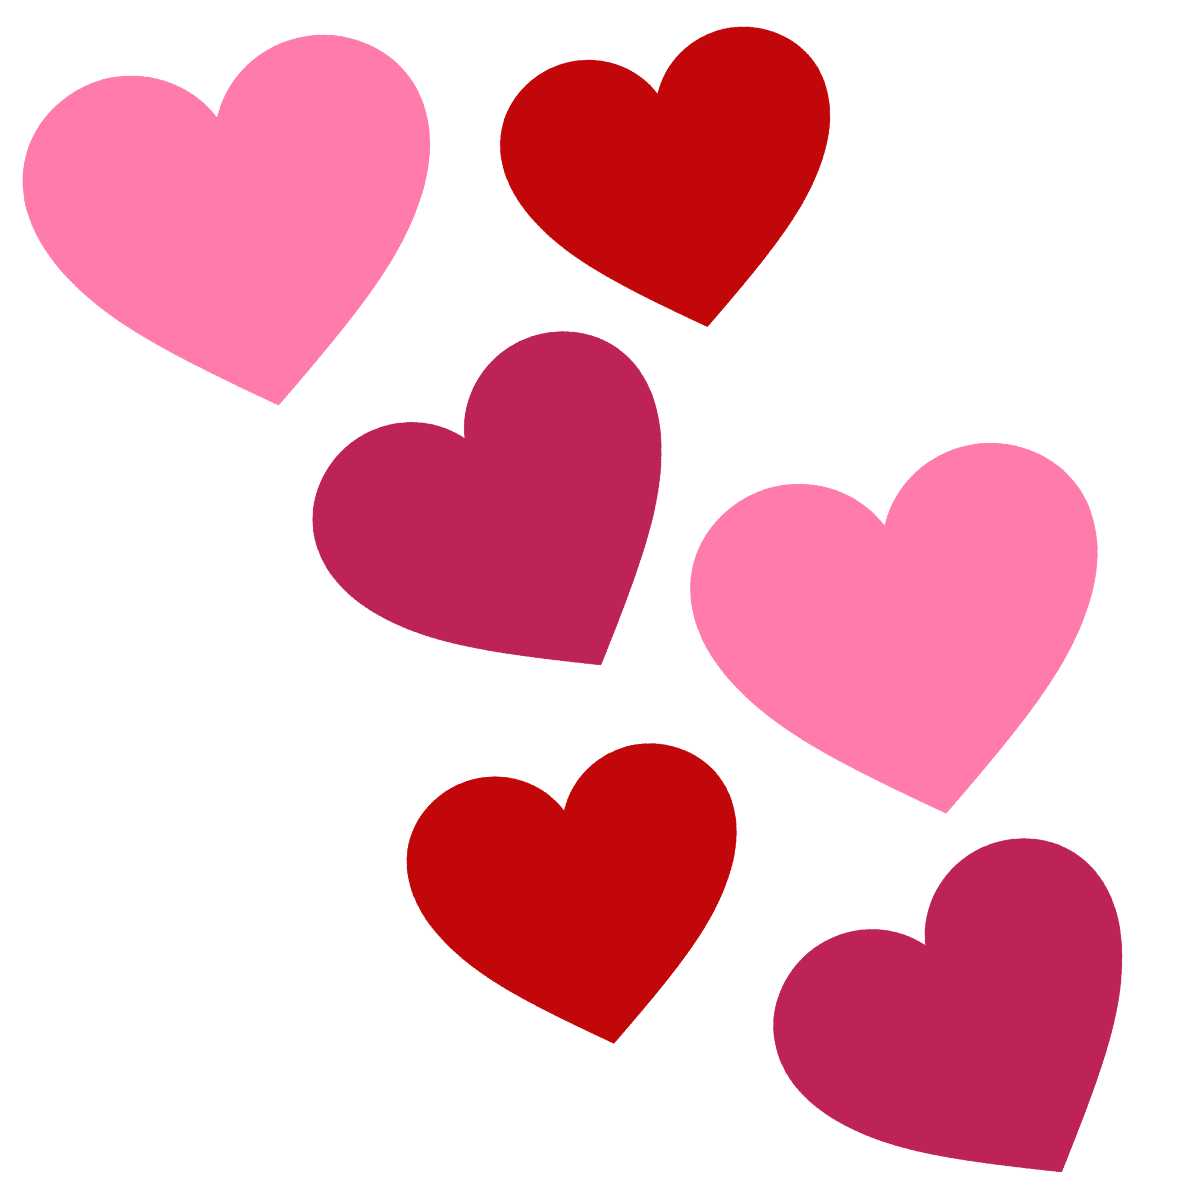 Free Hearts Pictures Download Free Clip Art Free Clip